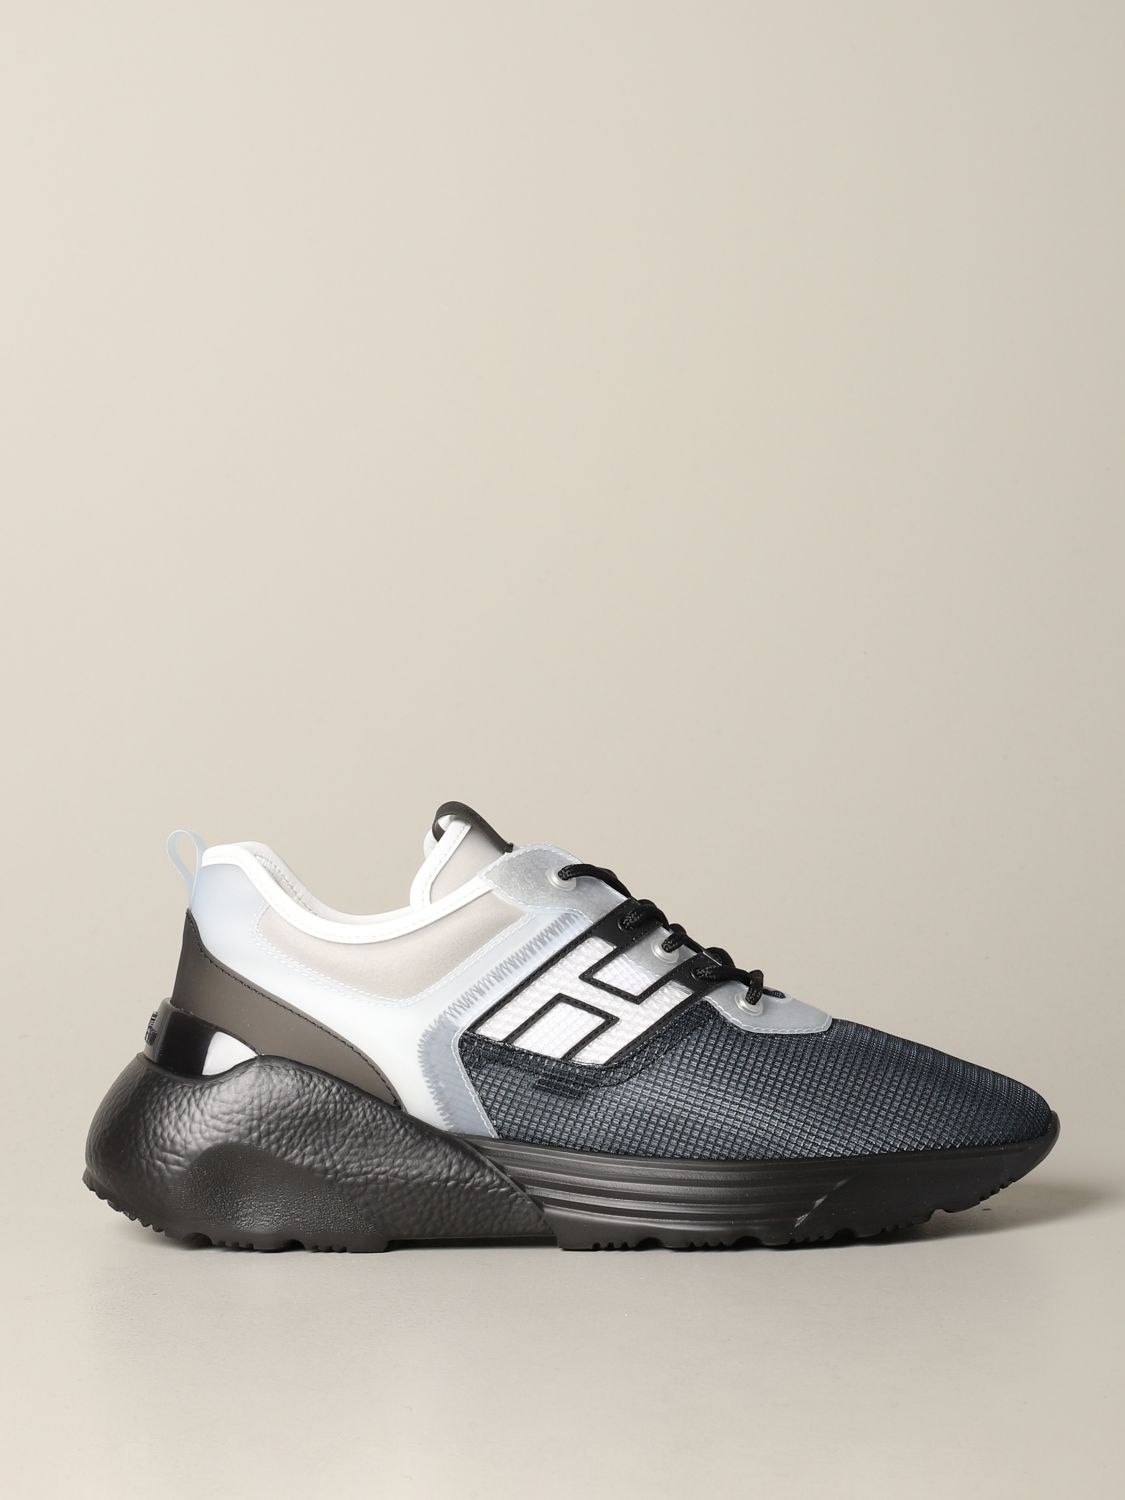 Active 1 Hogan sneakers in rubber leather and mesh